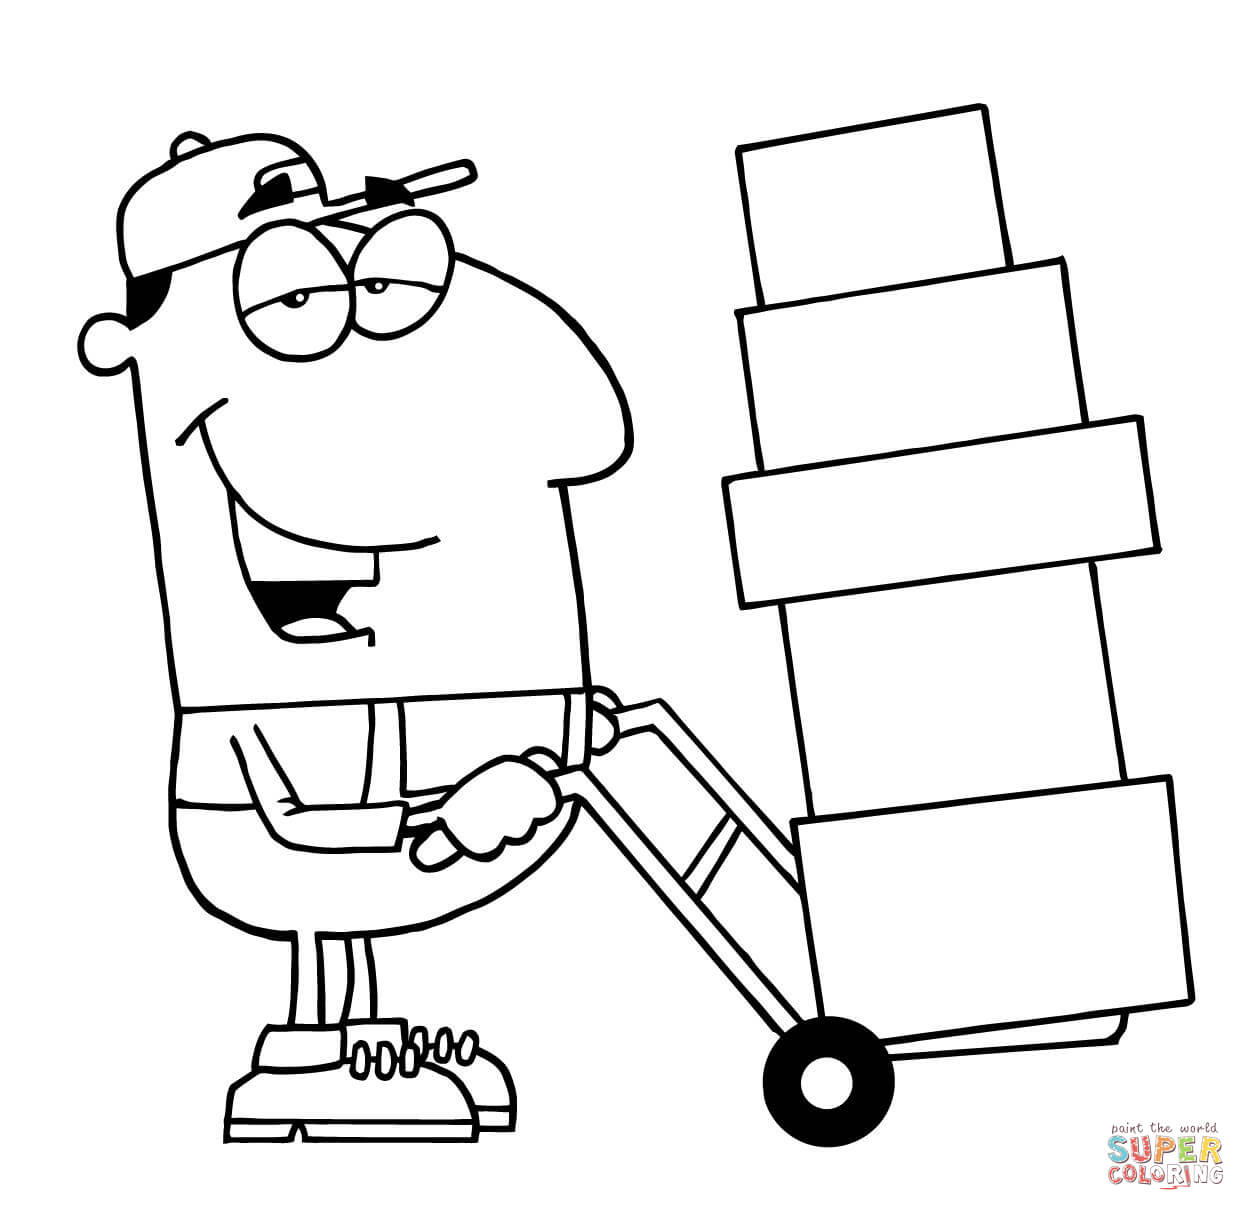 Construction Worker With Hammer And Tool Box Coloring Page | Free ...